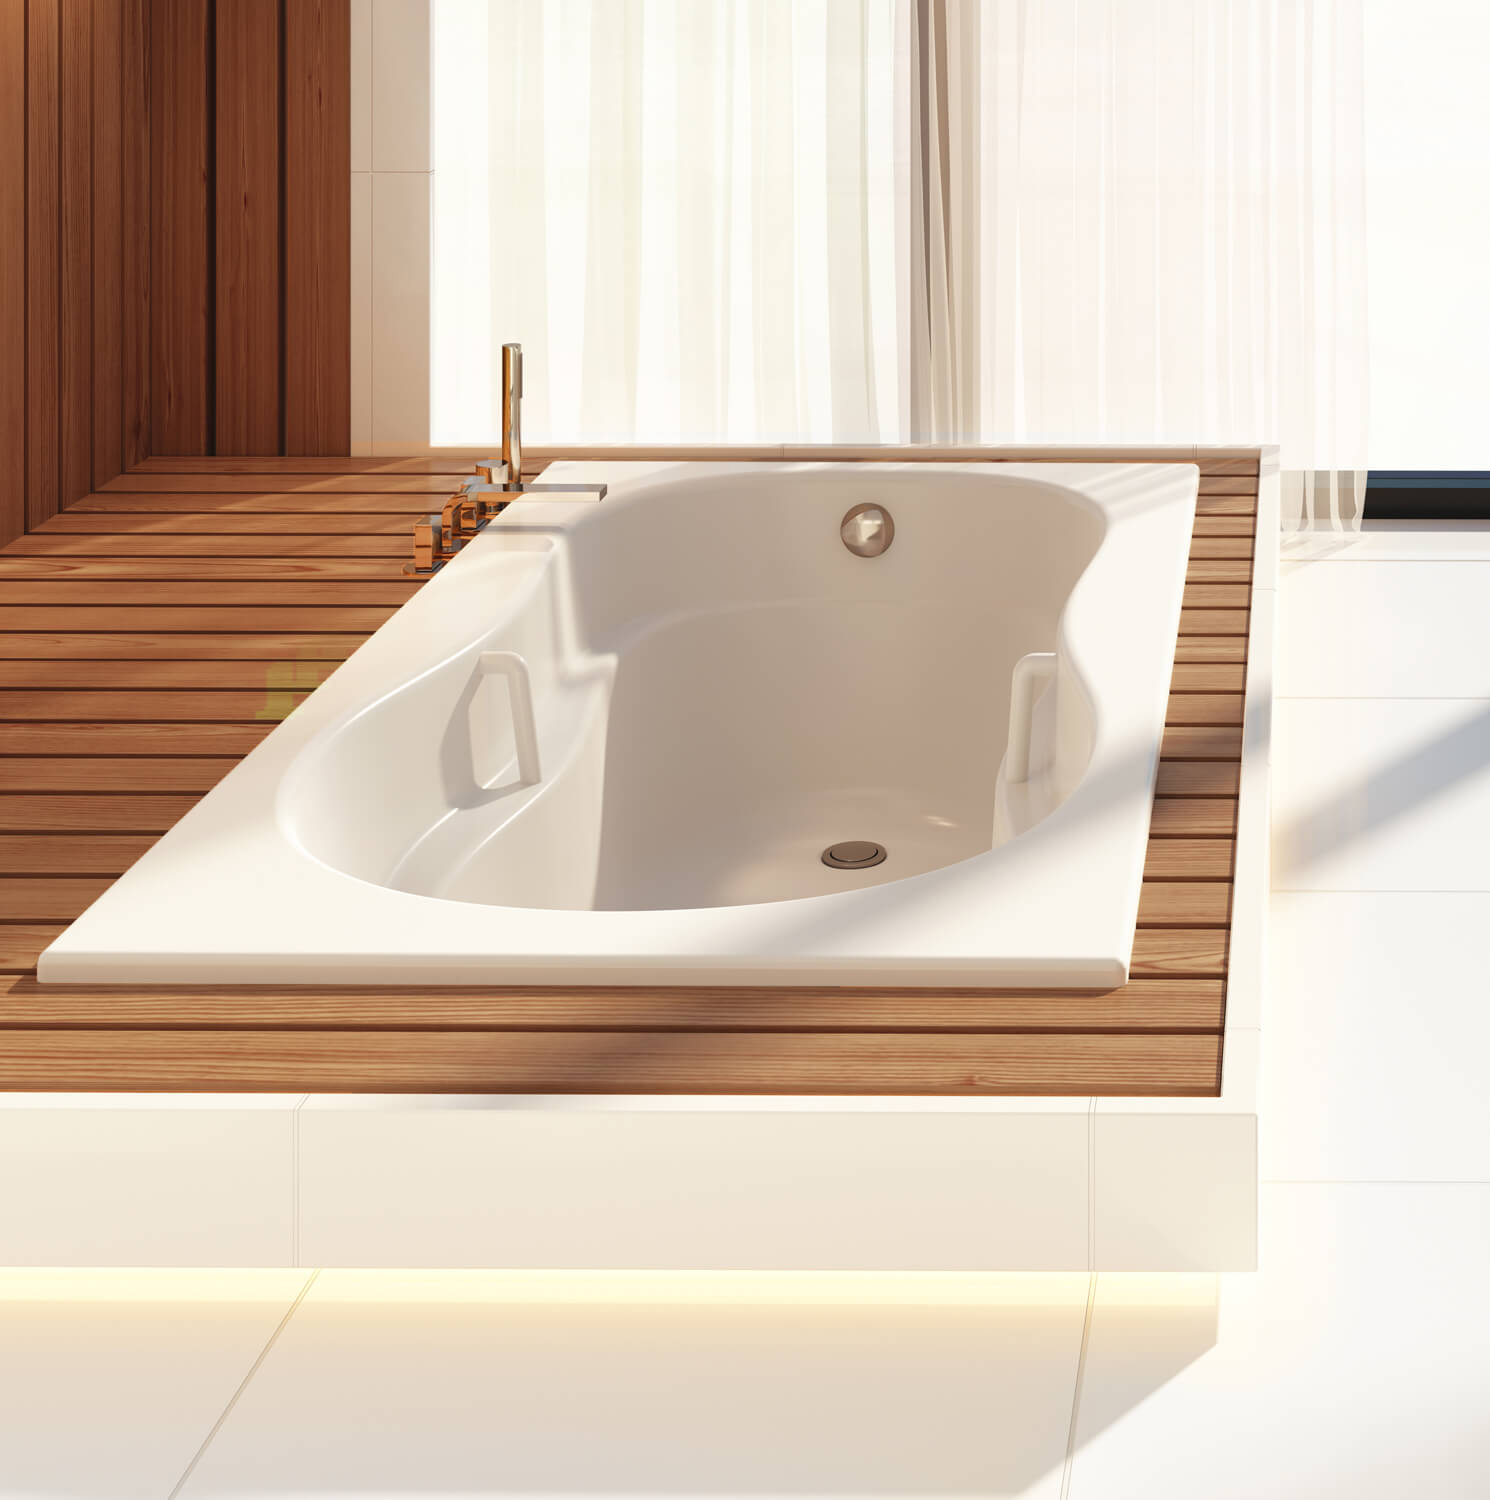 Bainultra Azur 55 collection alcove drop-in air jet bathtub for your master bathroom